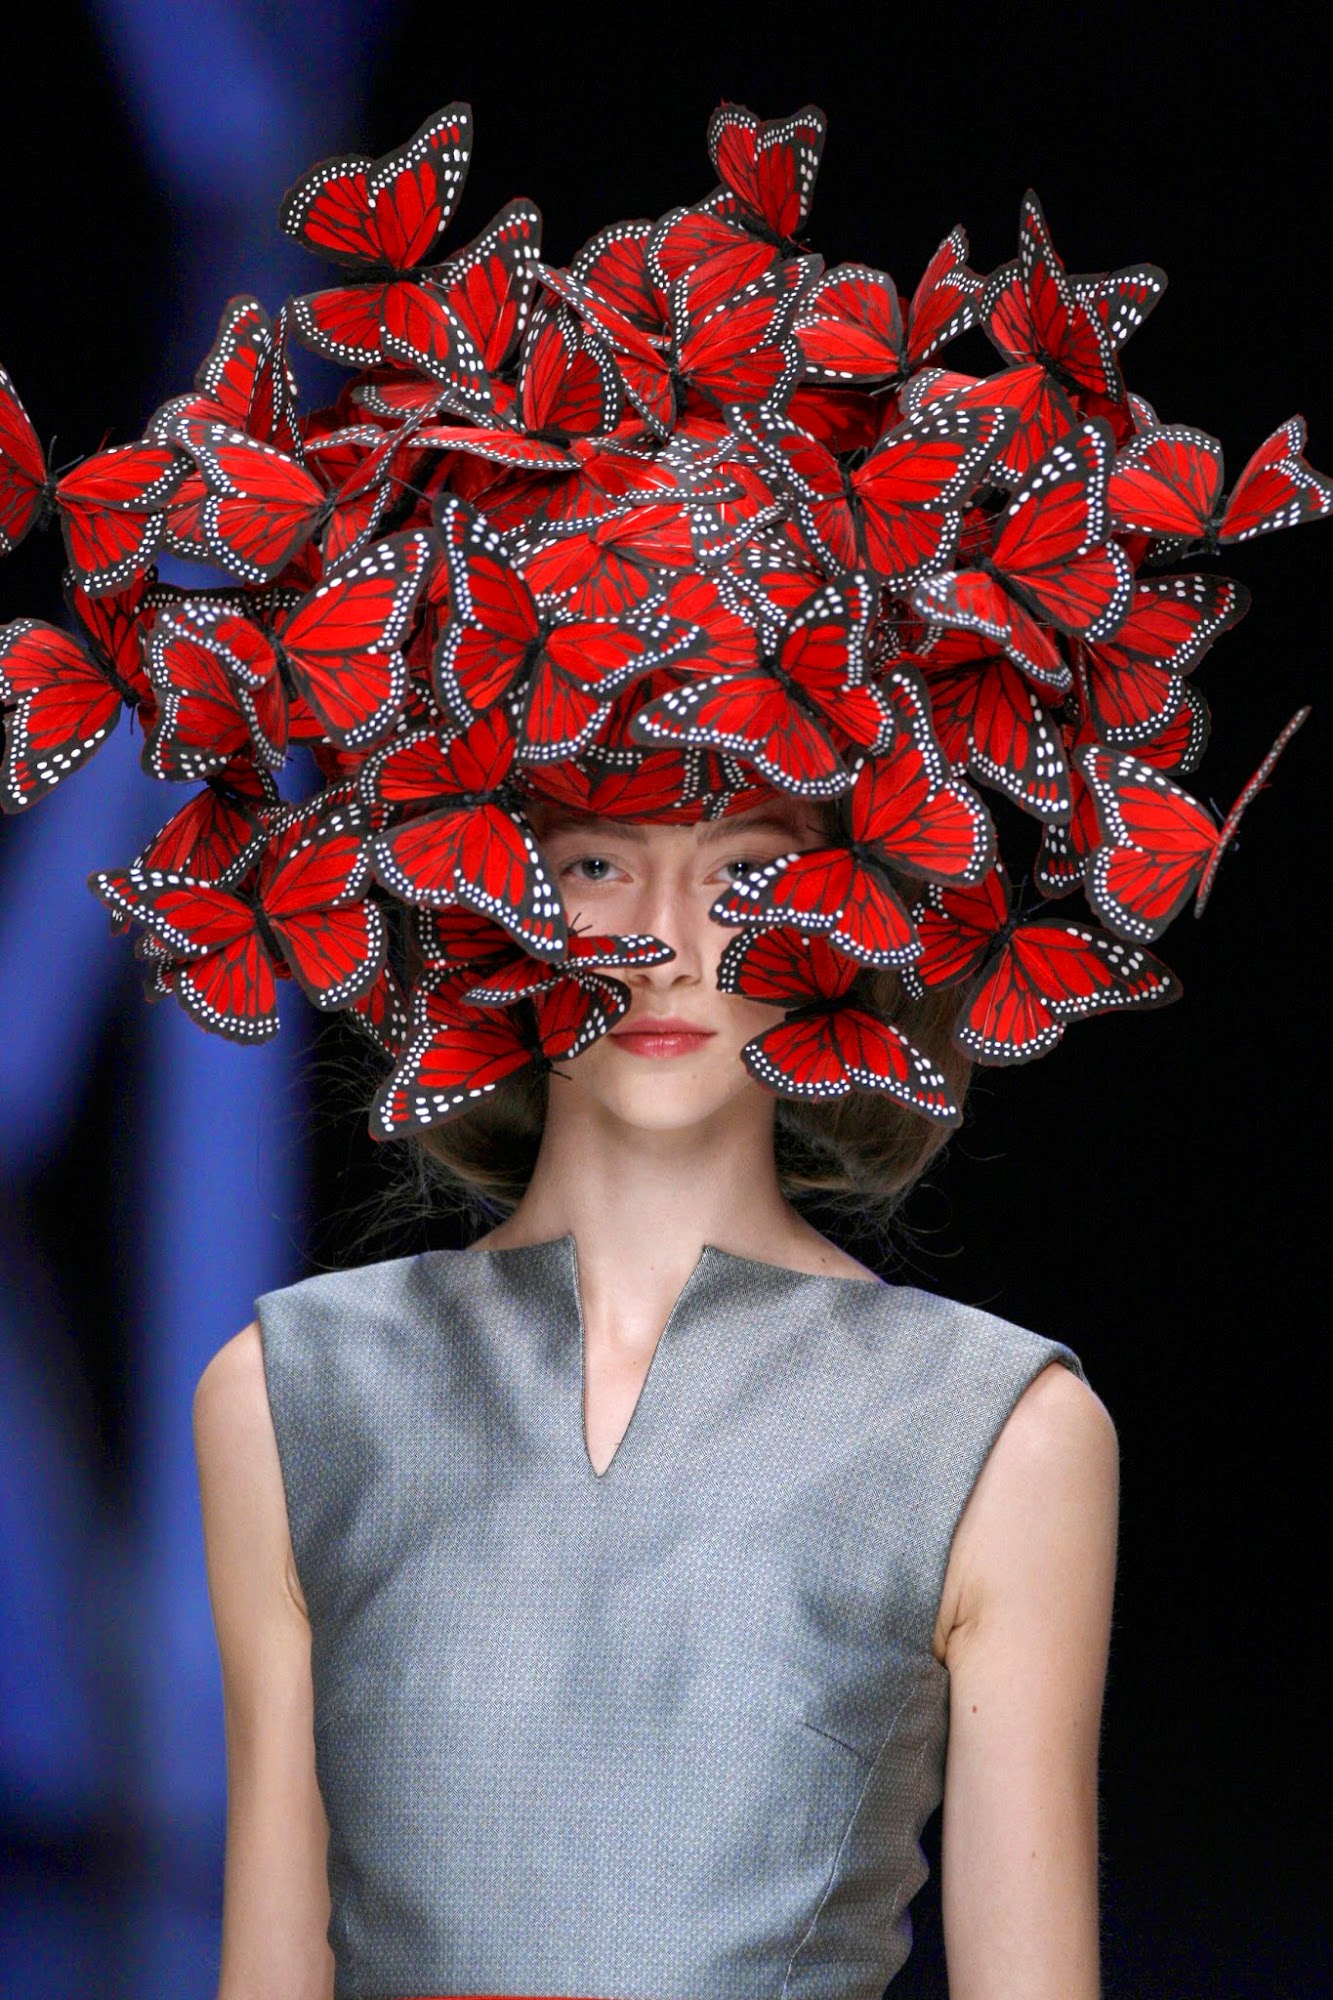 Alexander McQueen's Savage Beauty comes to London